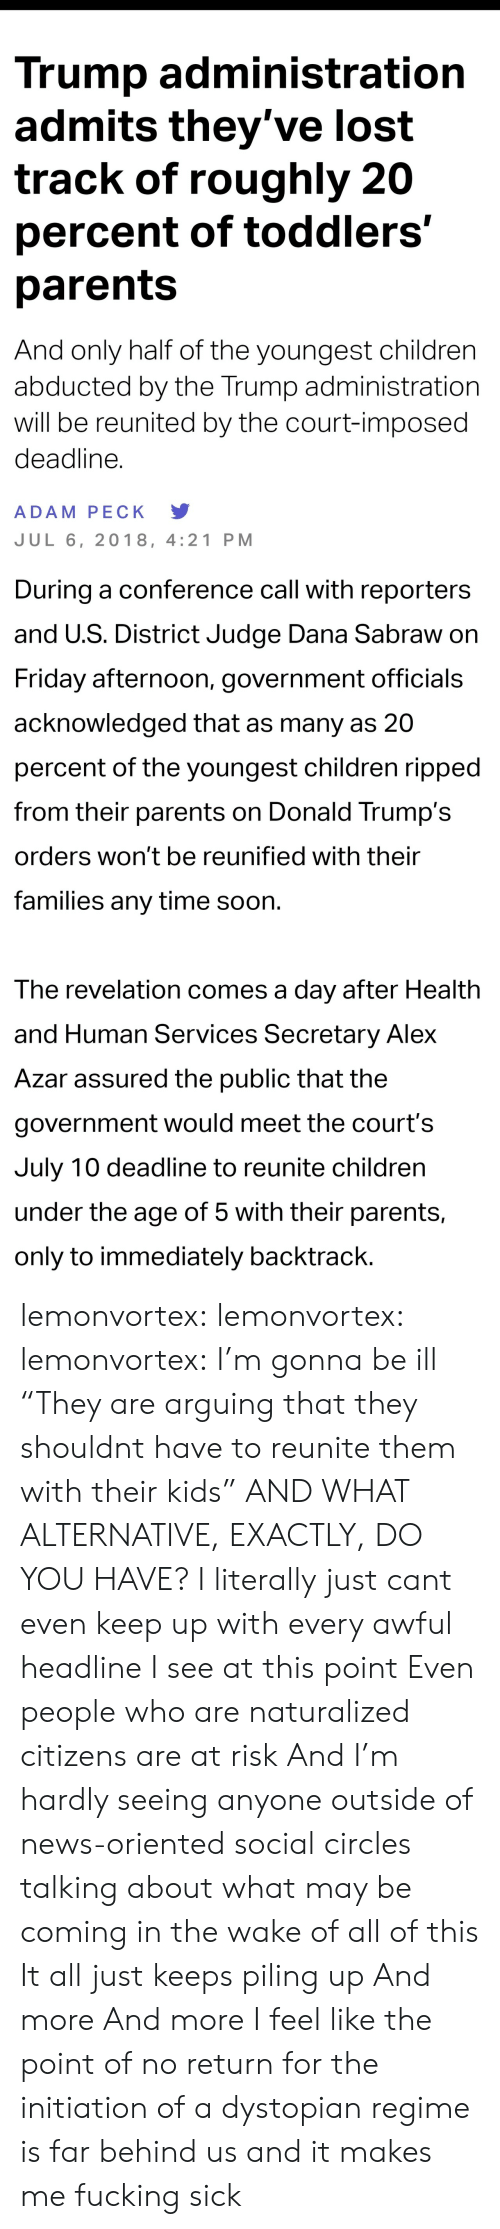 "initiation: Trump administratiorn  admits they've lost  track of roughly 20  percent of toddlers'  parents  And only half of the youngest children  abducted by the Trump administration  will be reunited by the court-imposed  deadline.  ADAM PECK Y  JUL 6, 2018, 4:21 PM   During a conference call with reporters  and U.S. District Judge Dana Sabraw on  Friday afternoon, government officials  acknowledged that as many as 20  percent of the youngest children ripped  from their parents on Donald Trump's  orders won't be reunified with their  families any time soon  The revelation comes a day after Health  and Human Services Secretary Alex  Azar assured the public that the  government would meet the court's  July 10 deadline to reunite children  under the age of 5 with their parents,  only to immediately backtrack lemonvortex:  lemonvortex:   lemonvortex:  I'm gonna be ill   ""They are arguing that they shouldnt have to reunite them with their kids""  AND WHAT ALTERNATIVE, EXACTLY, DO YOU HAVE?   I literally just cant even keep up with every awful headline I see at this point  Even people who are naturalized citizens are at risk  And I'm hardly seeing anyone outside of news-oriented social circles talking about what may be coming in the wake of all of this  It all just keeps piling up  And more  And more  I feel like the point of no return for the initiation of a dystopian regime is far behind us and it makes me fucking sick"